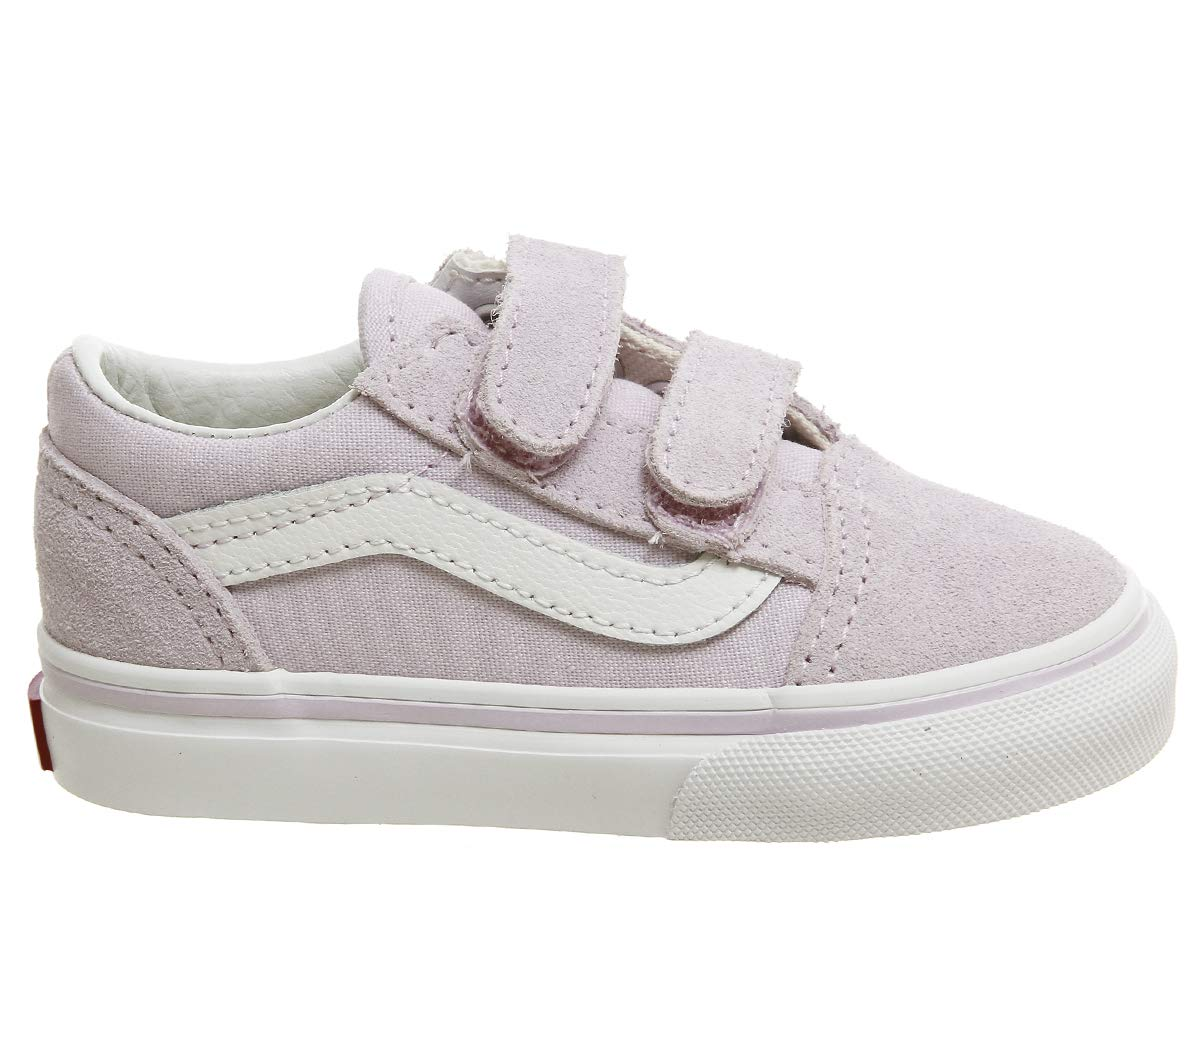 SPORTS SHOE BLACK VANS OLD SKOOL D3YBLK B07D7QFY8Z 10.5 M US Little Kid|Lavender Fog True White Lavender Fog True White 10.5 M US Little Kid, アサシナムラ d6d043f3